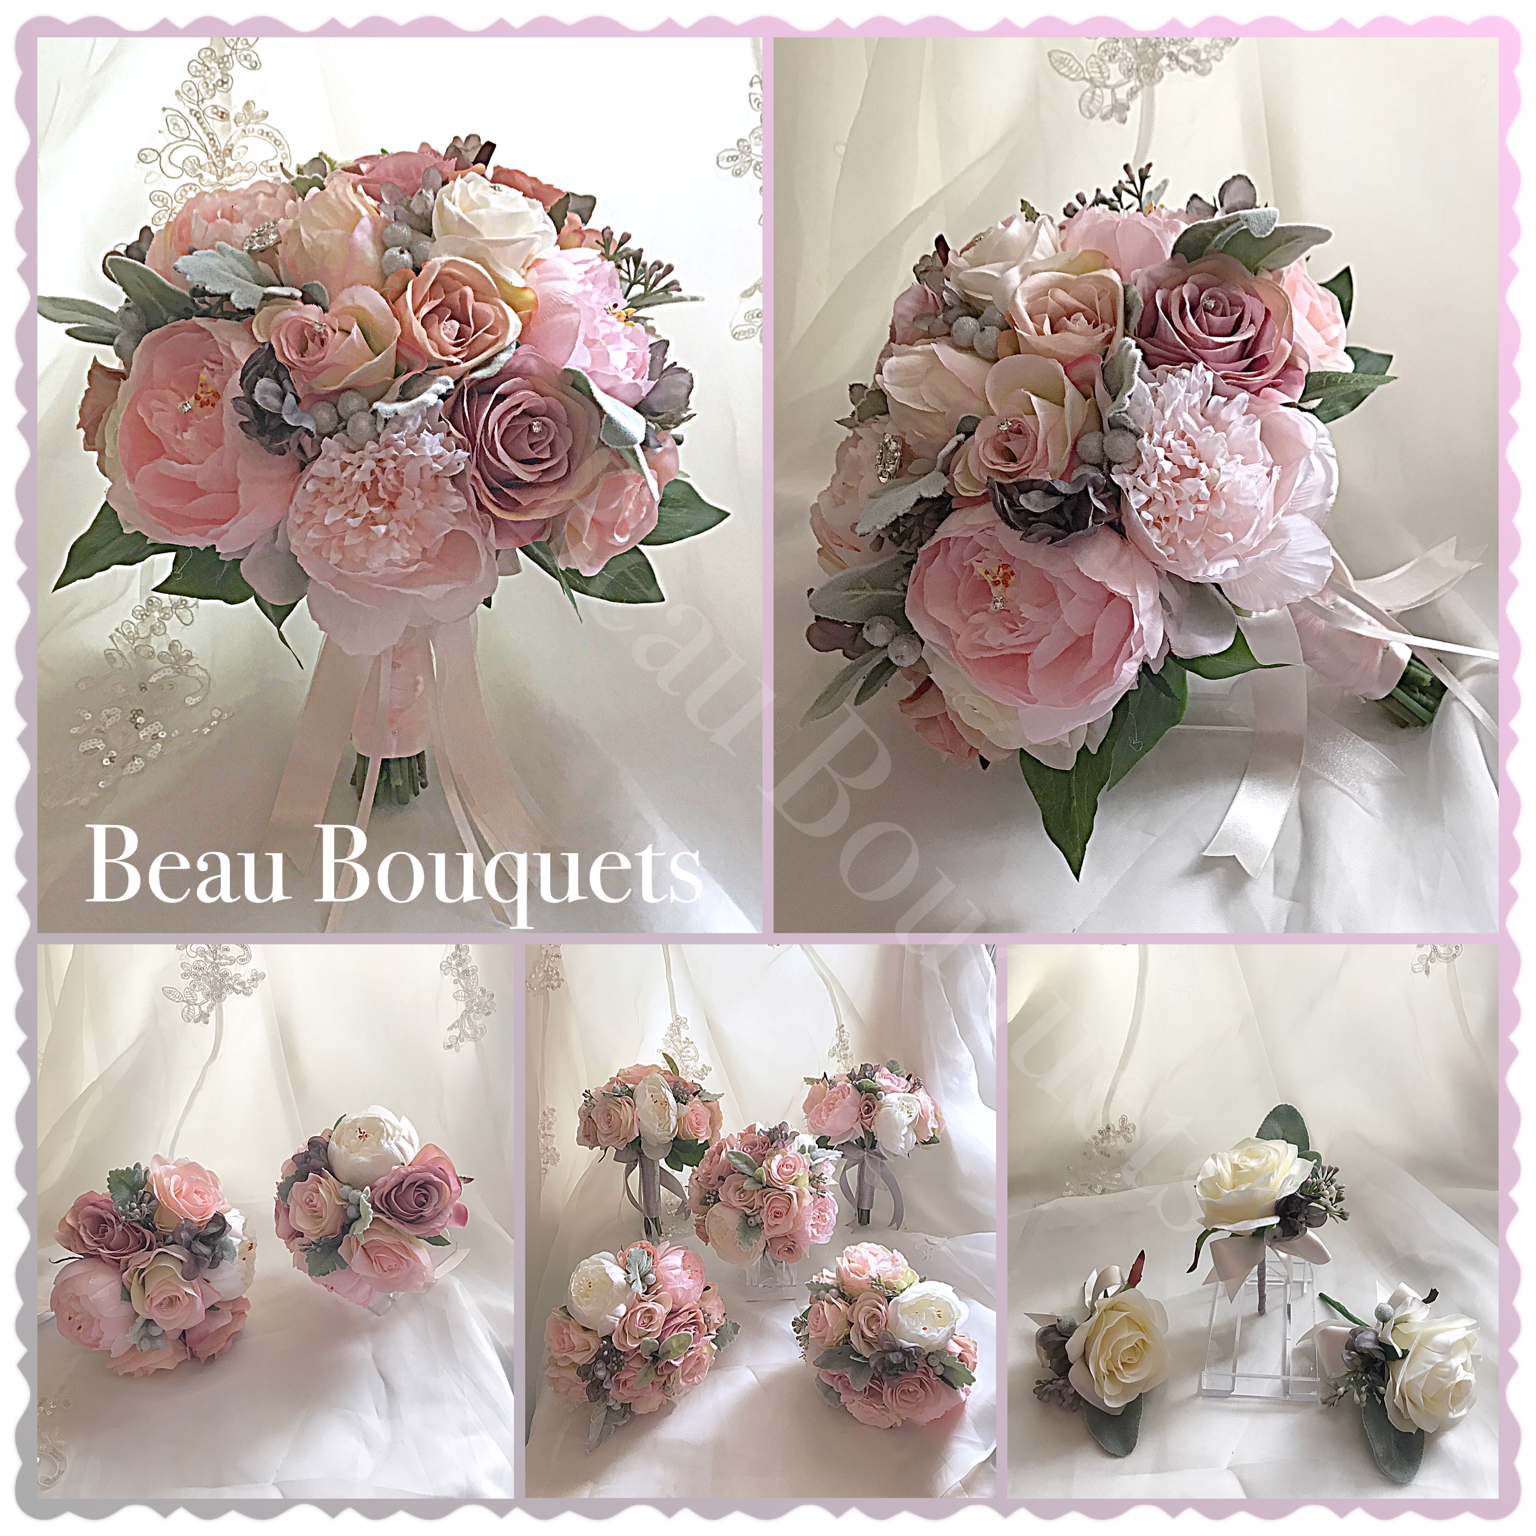 AMORE - Round Bride Bouquet package Rose, peony, delphinium, berry & waxflower with dusky miller foliage ind soft pinks & grey